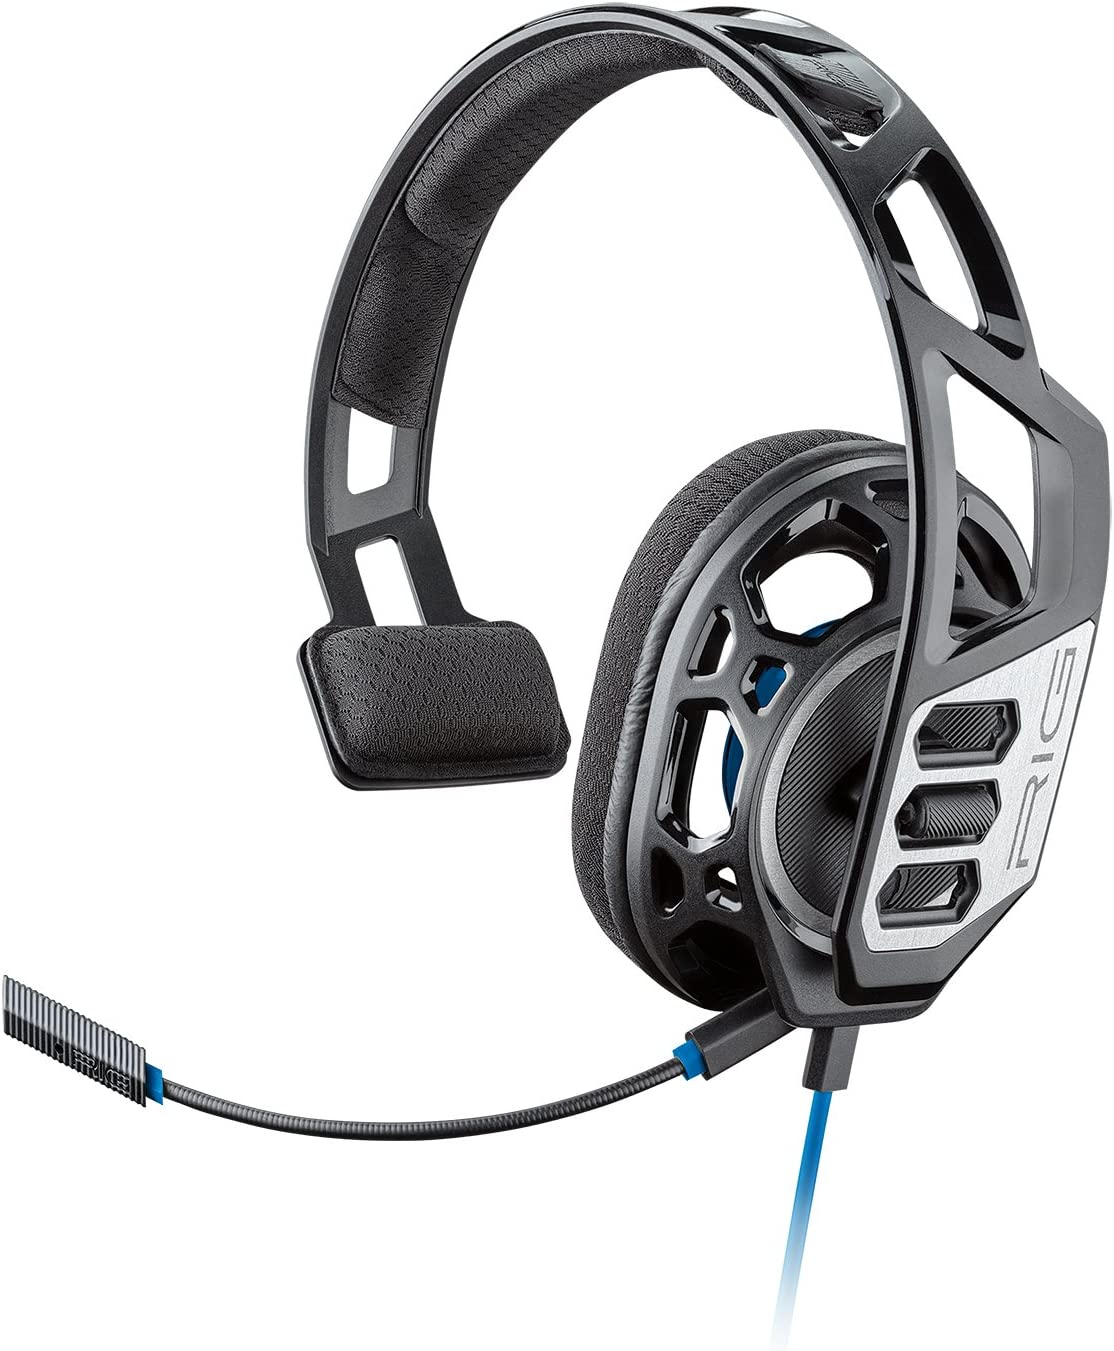 Plantronics Gaming Headset, RIG 100HS Gaming Headset for Playstation 4 with Open Ear Full Range Chat 209190-01